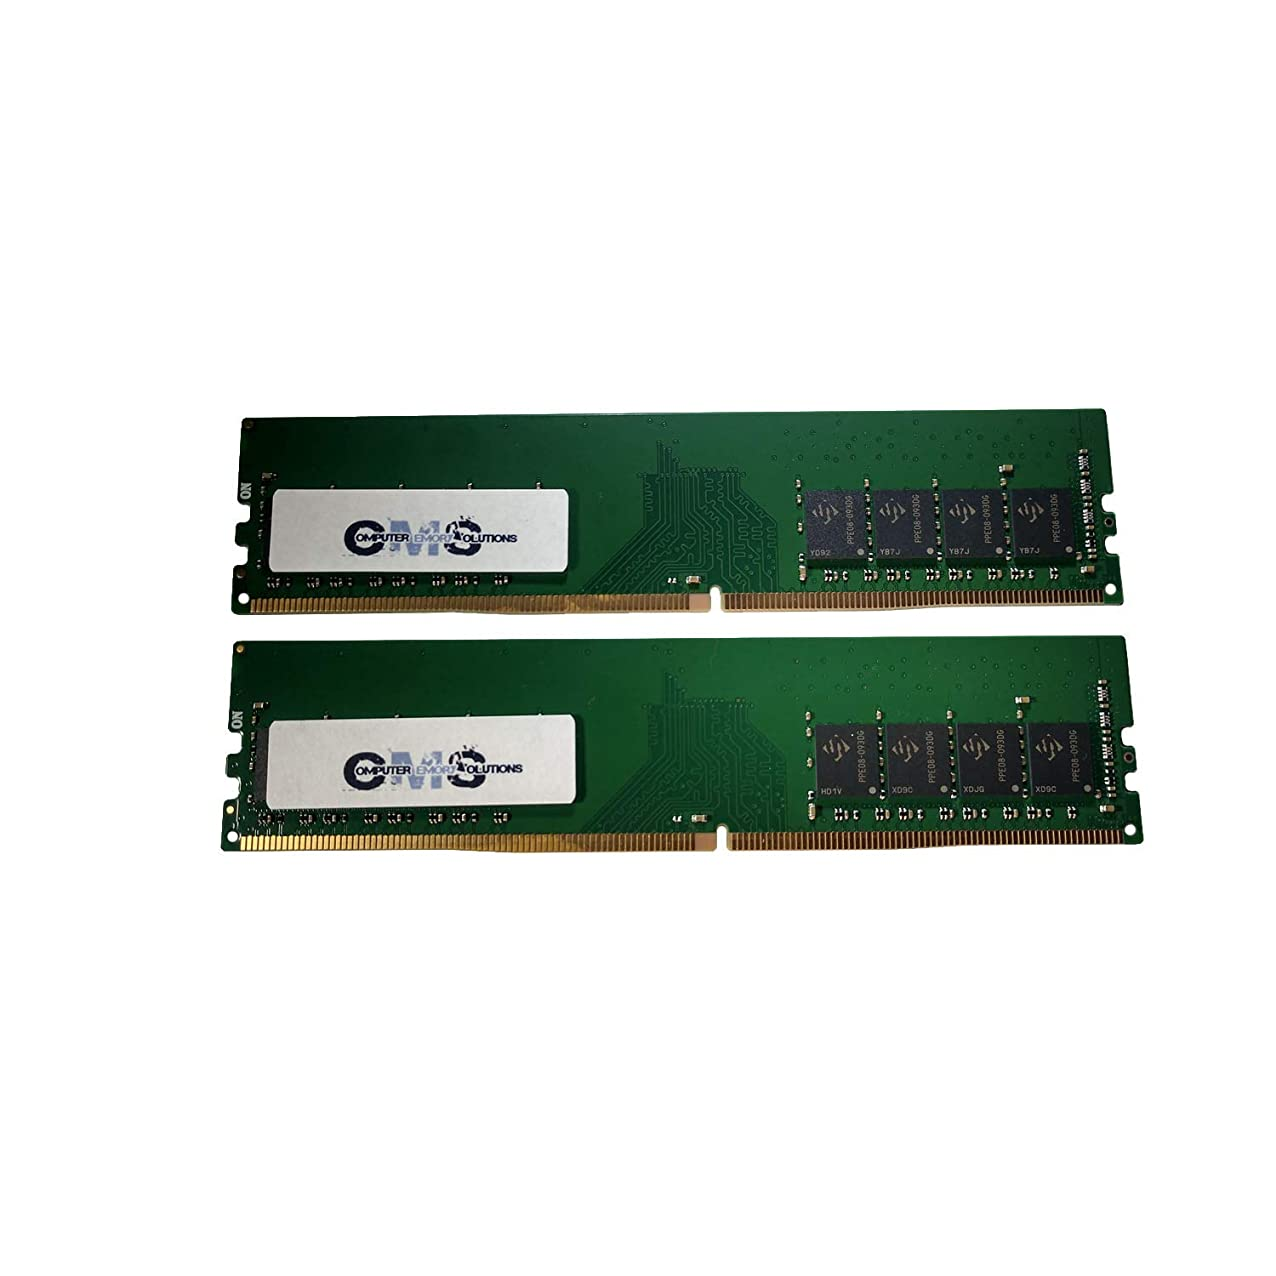 16GB 2X8GB Memory RAM Compatible with Dell XPS 8920 Desktop by CMS B107 oacrbelaqrecx995